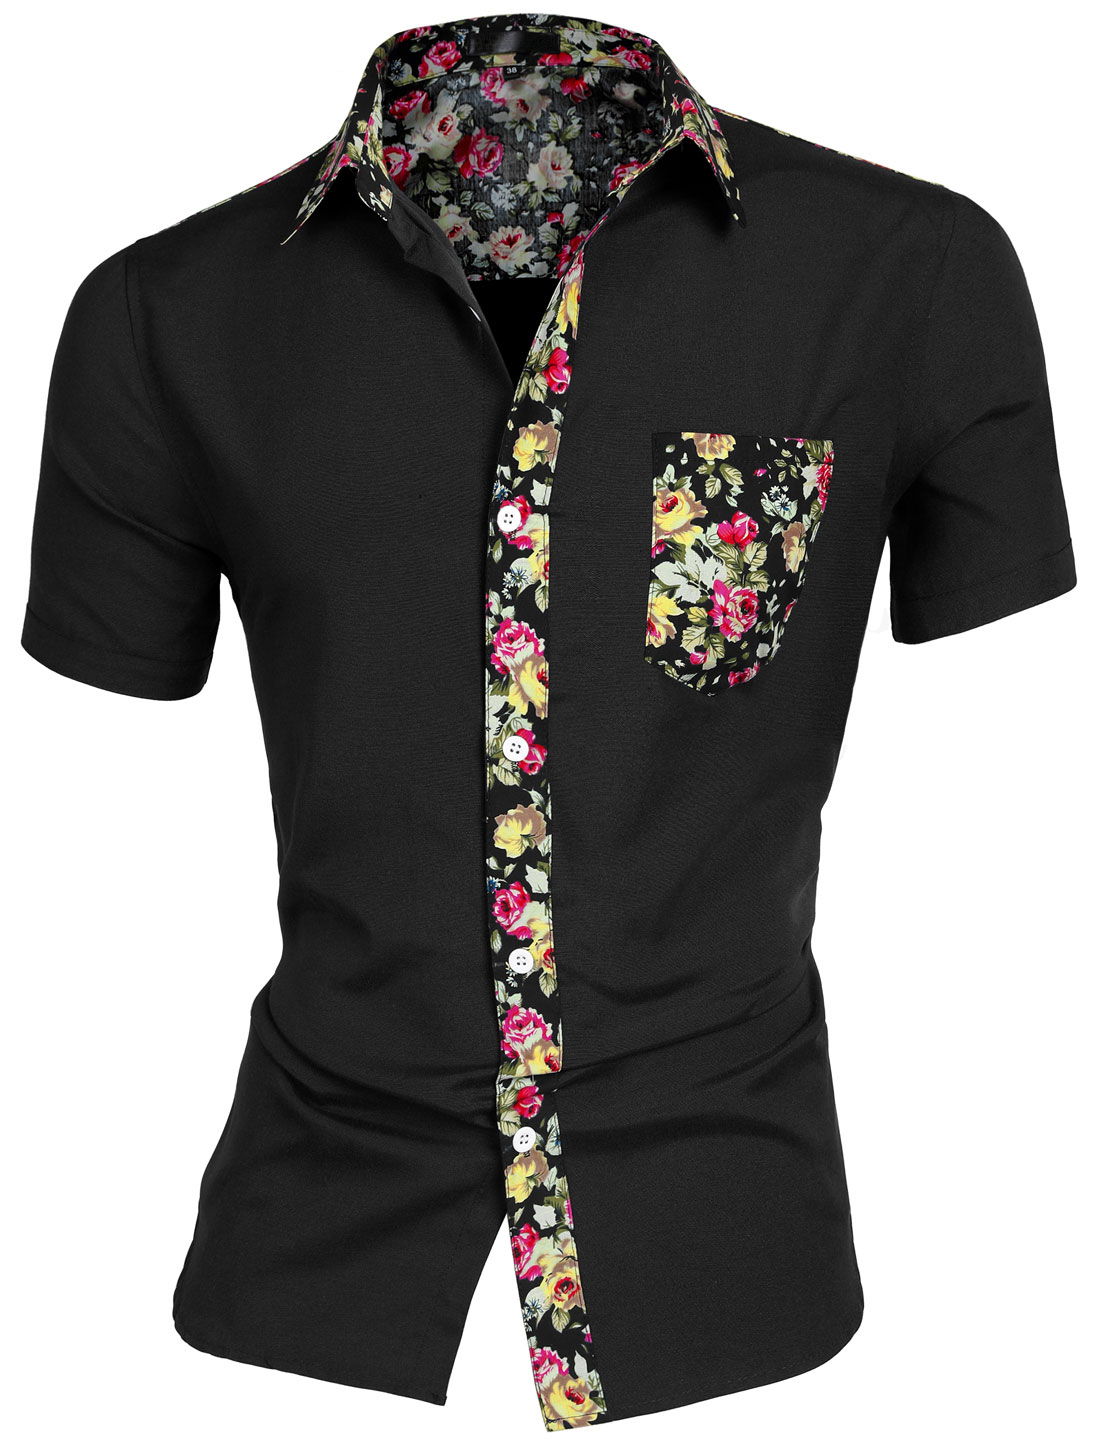 Men Short Sleeve Floral Prints Casual Button Down Shirts Black L